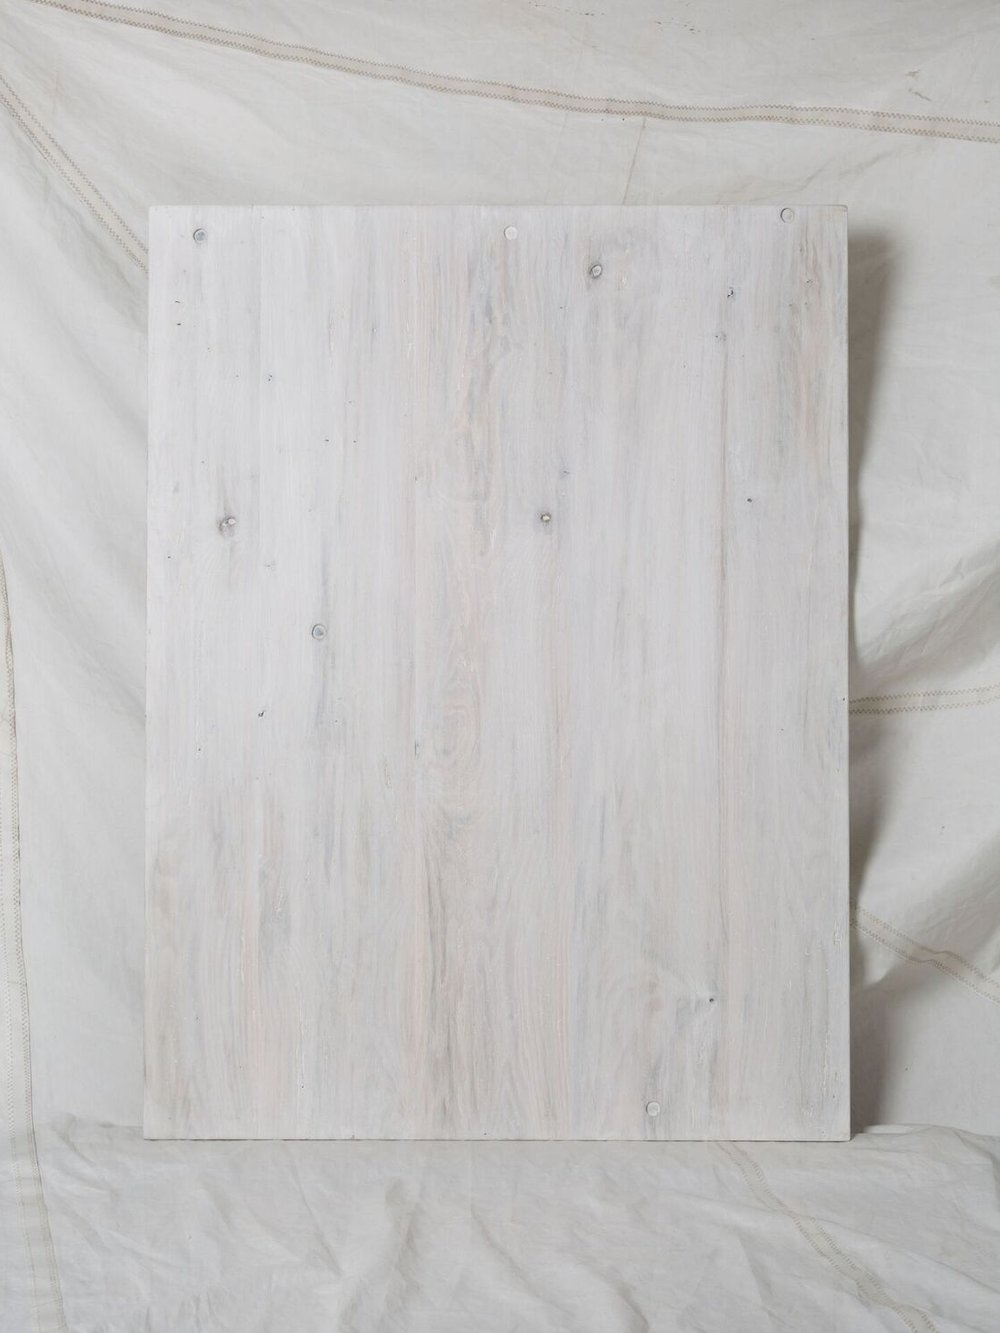 "CW009  Reclaimed Oak | White Washed 36"" x 48""  $275/week"